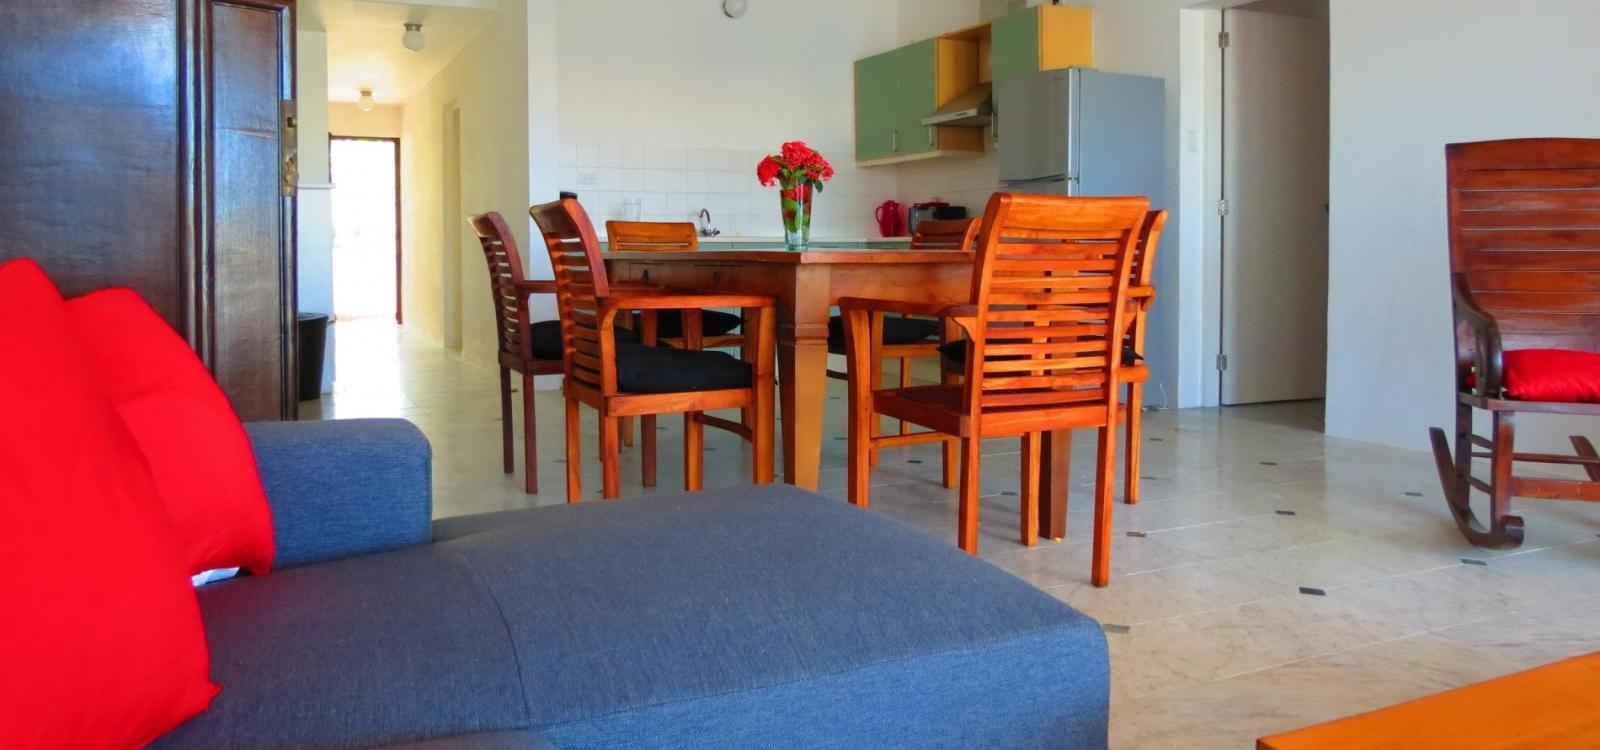 A Plus Keuken Tienen Apartment Breezy Island Time Vacation Rentals